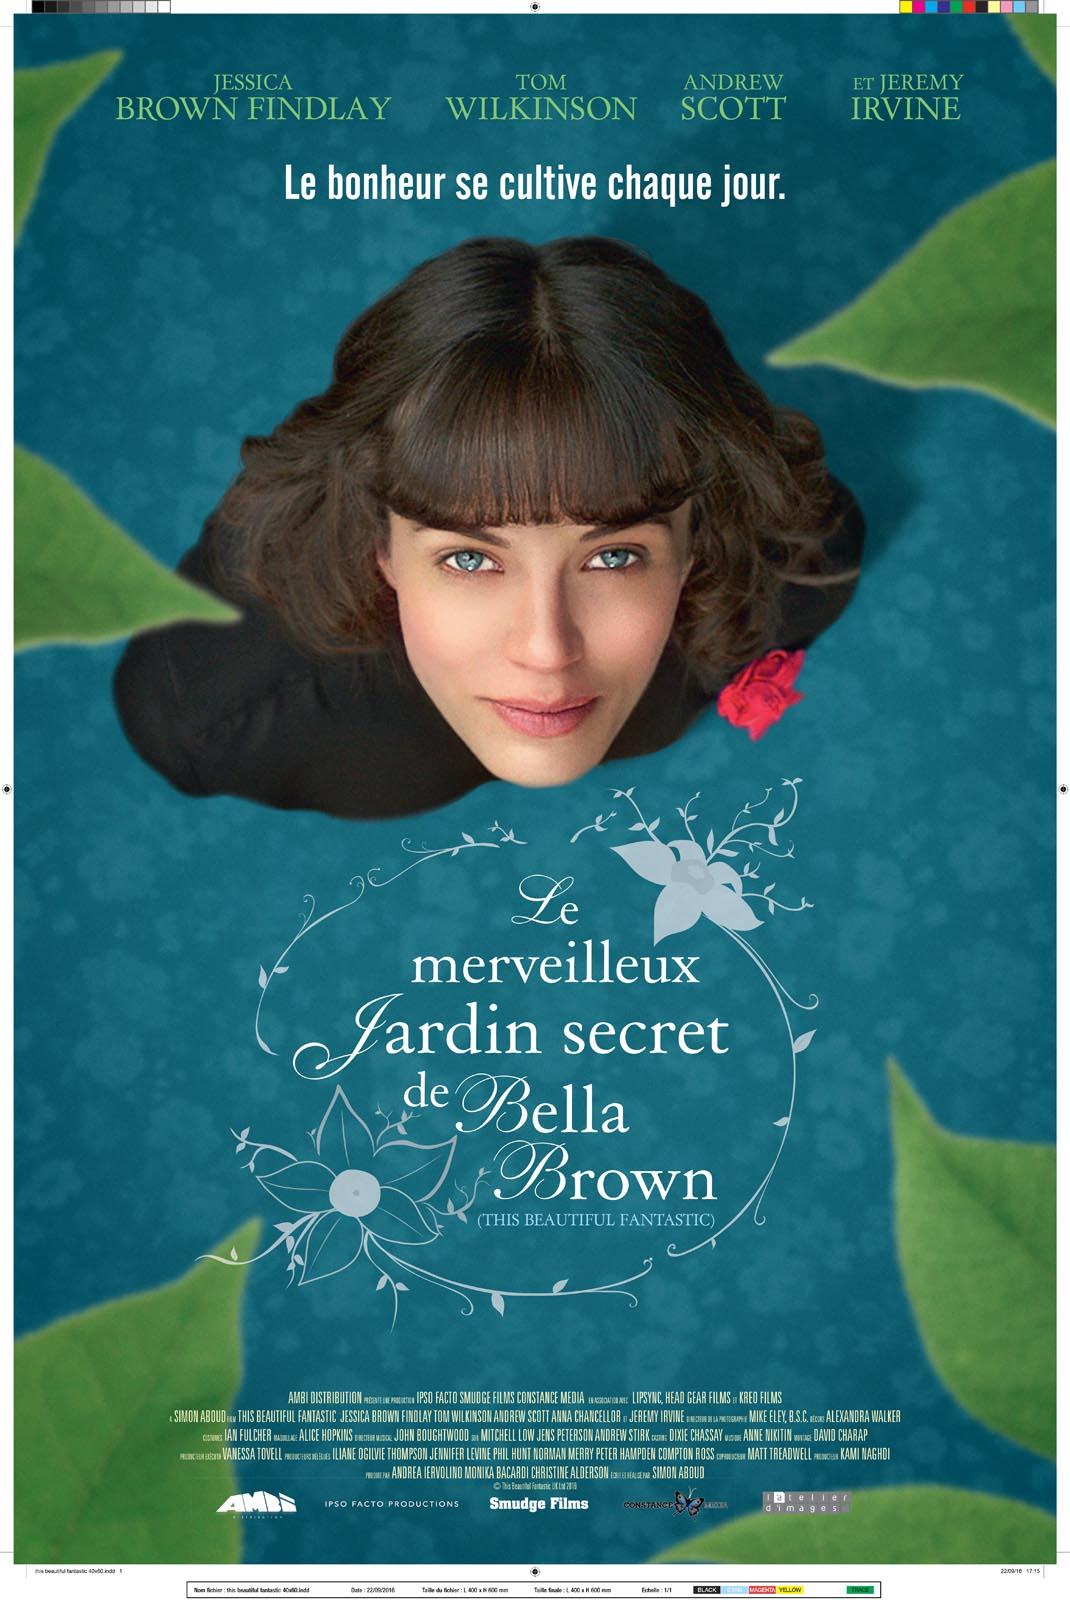 Le Merveilleux Jardin Secret de Bella Brown FRENCH DVDRIP